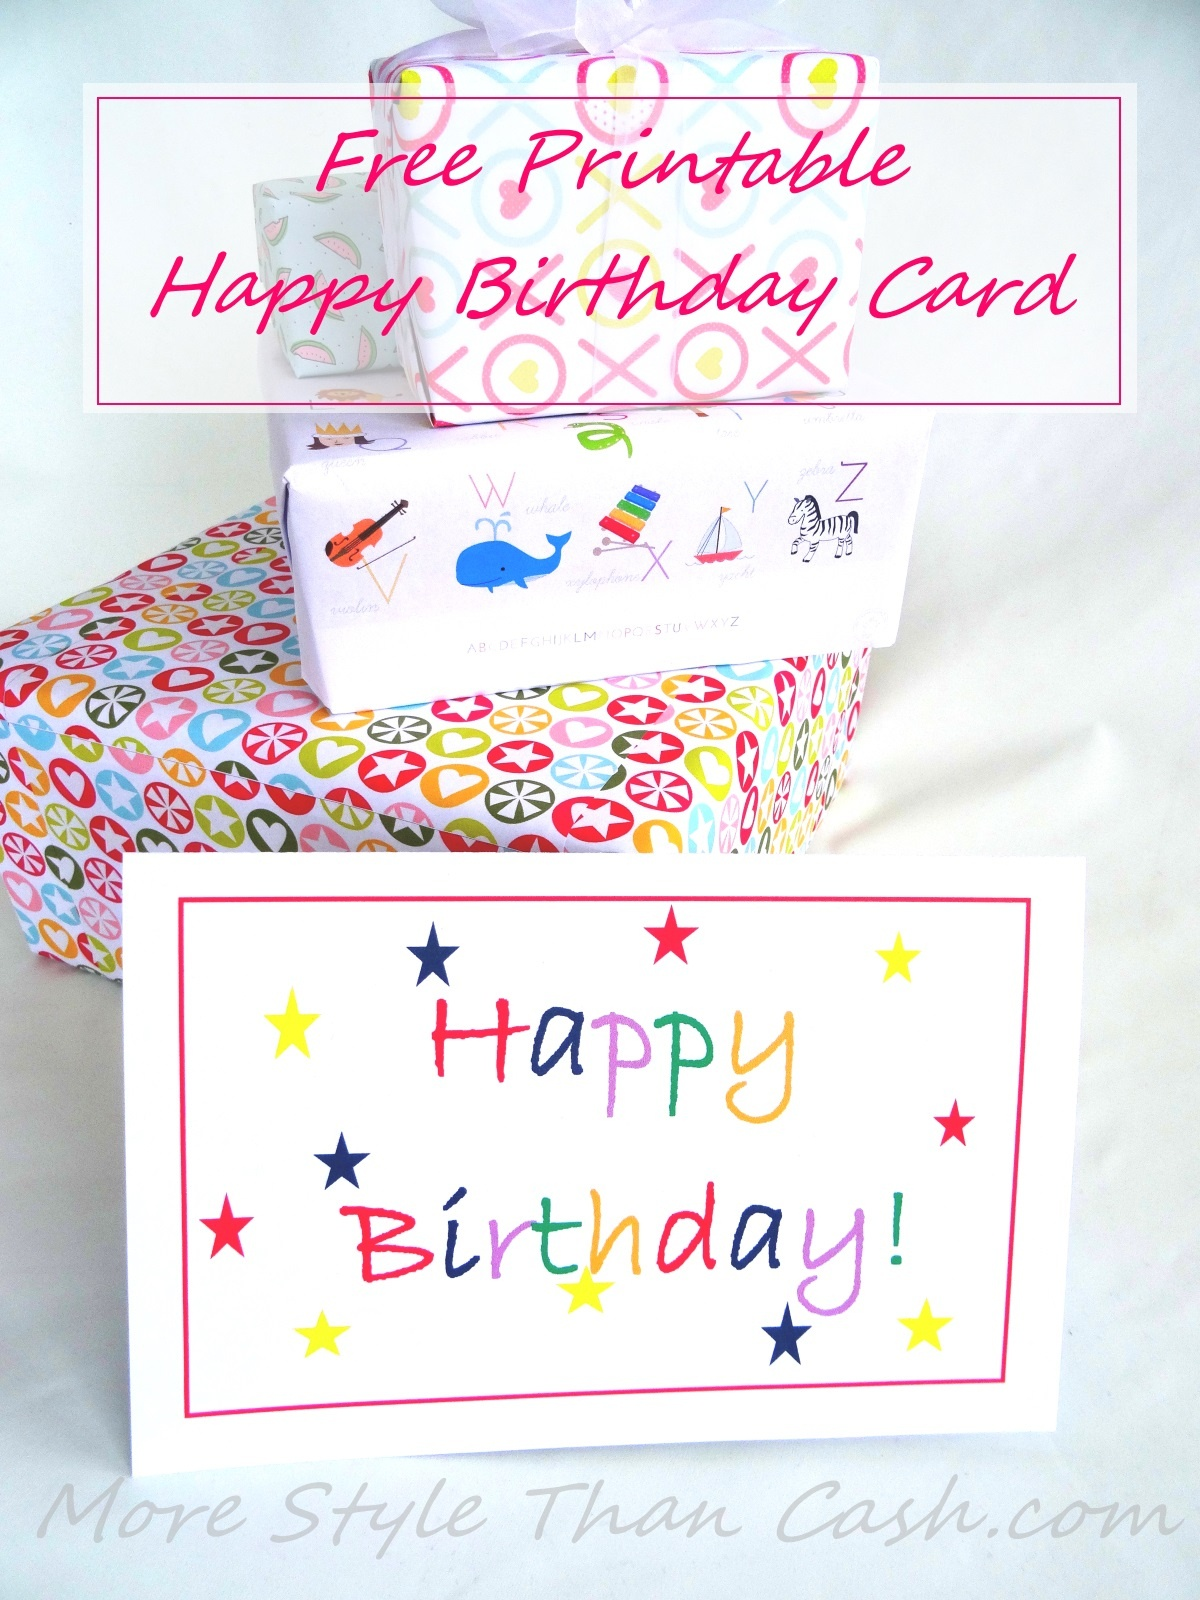 Free Printable Birthday Card - Free Printable Picture Cards